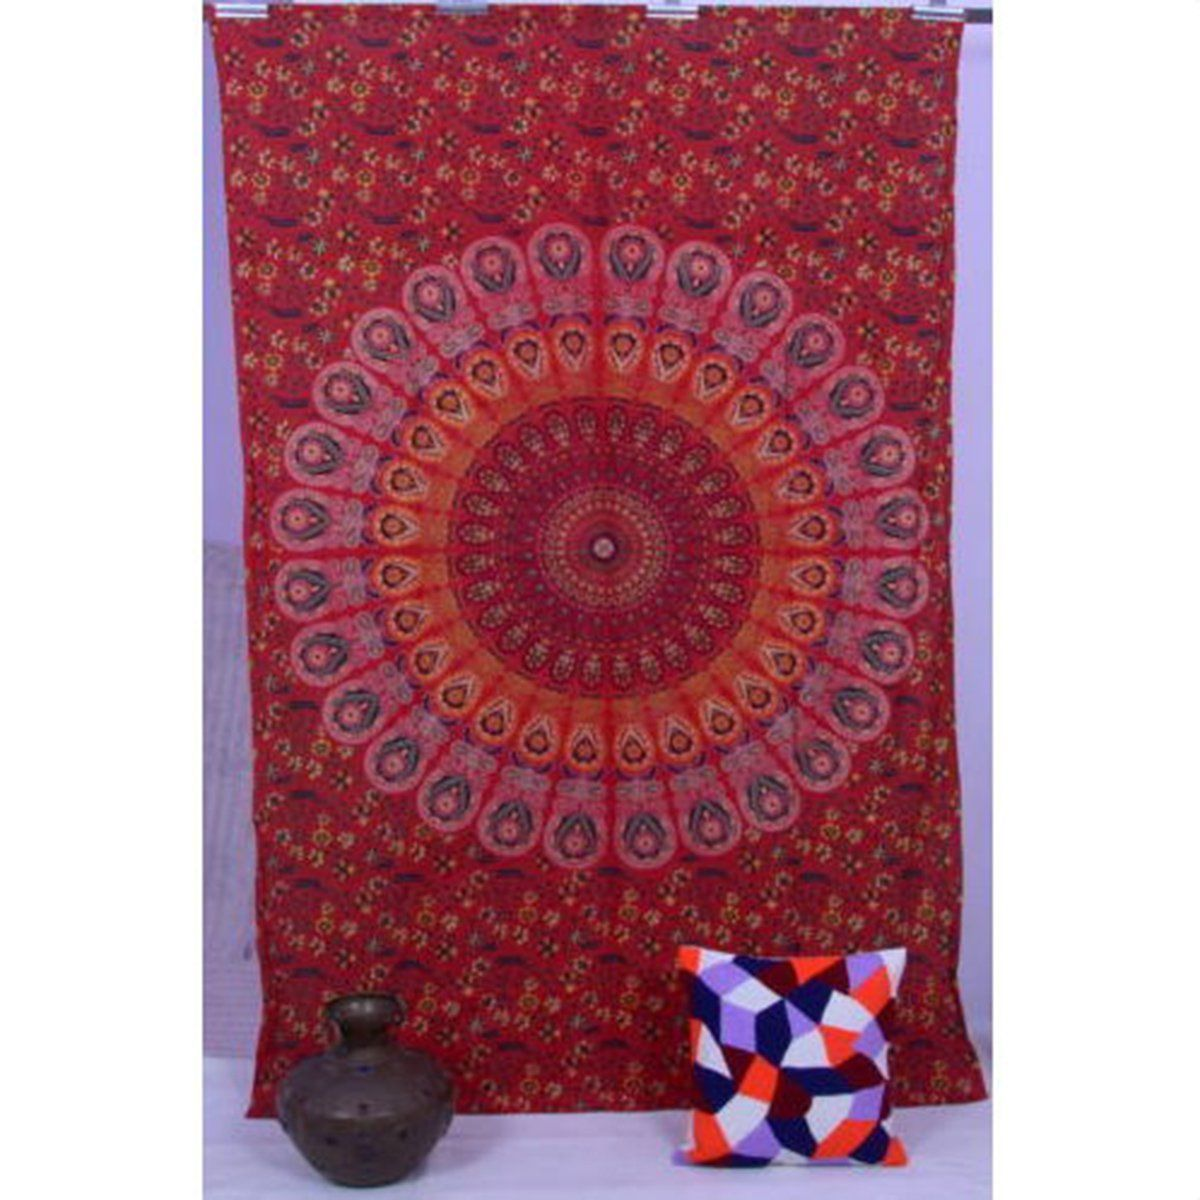 New Indian Towel Scarve Fashion Mandala Tapestry Beach Picnic Throw Rug Blanket Polyester Cotton